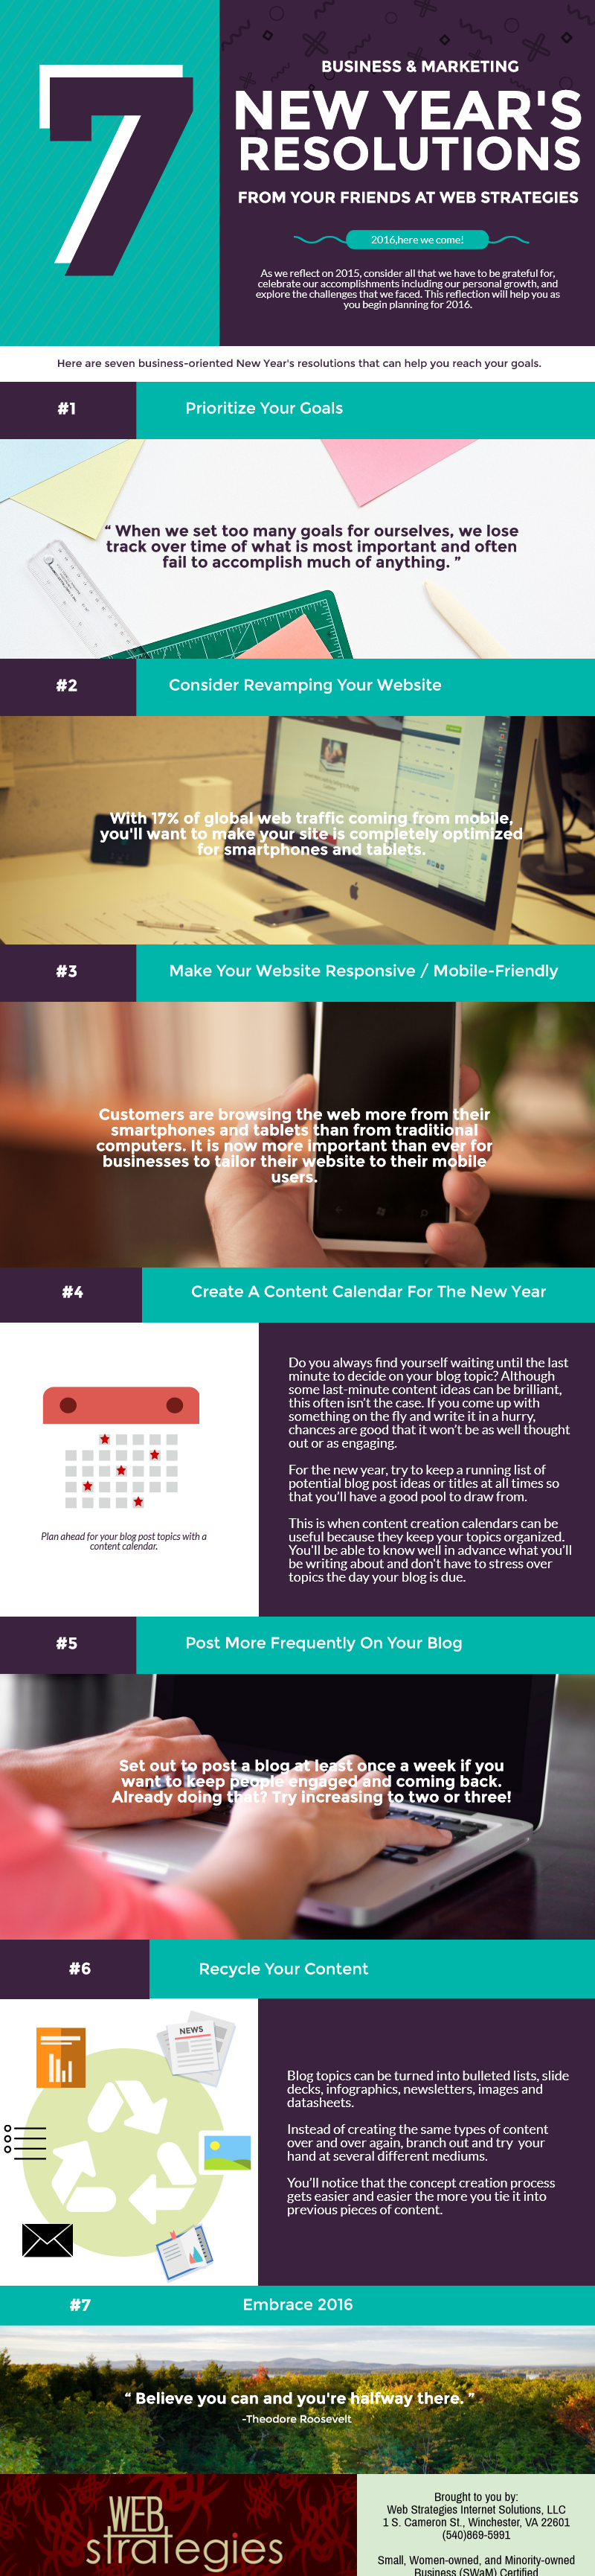 Business marketing New Year's Resolutions(1)